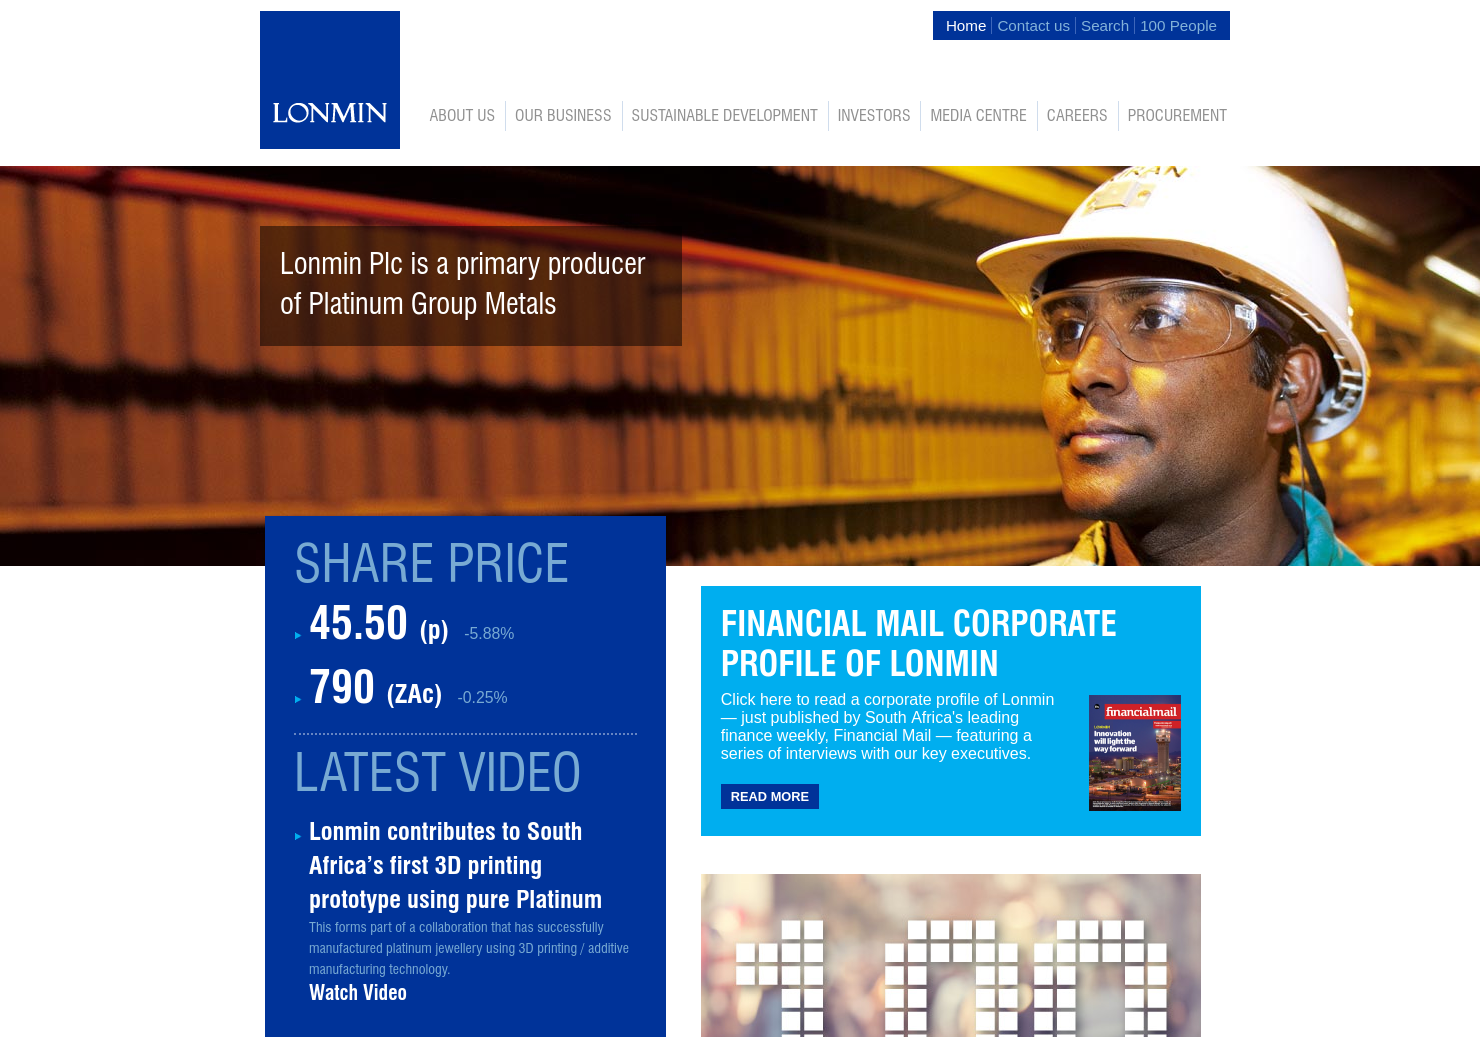 Lonmin Home Page